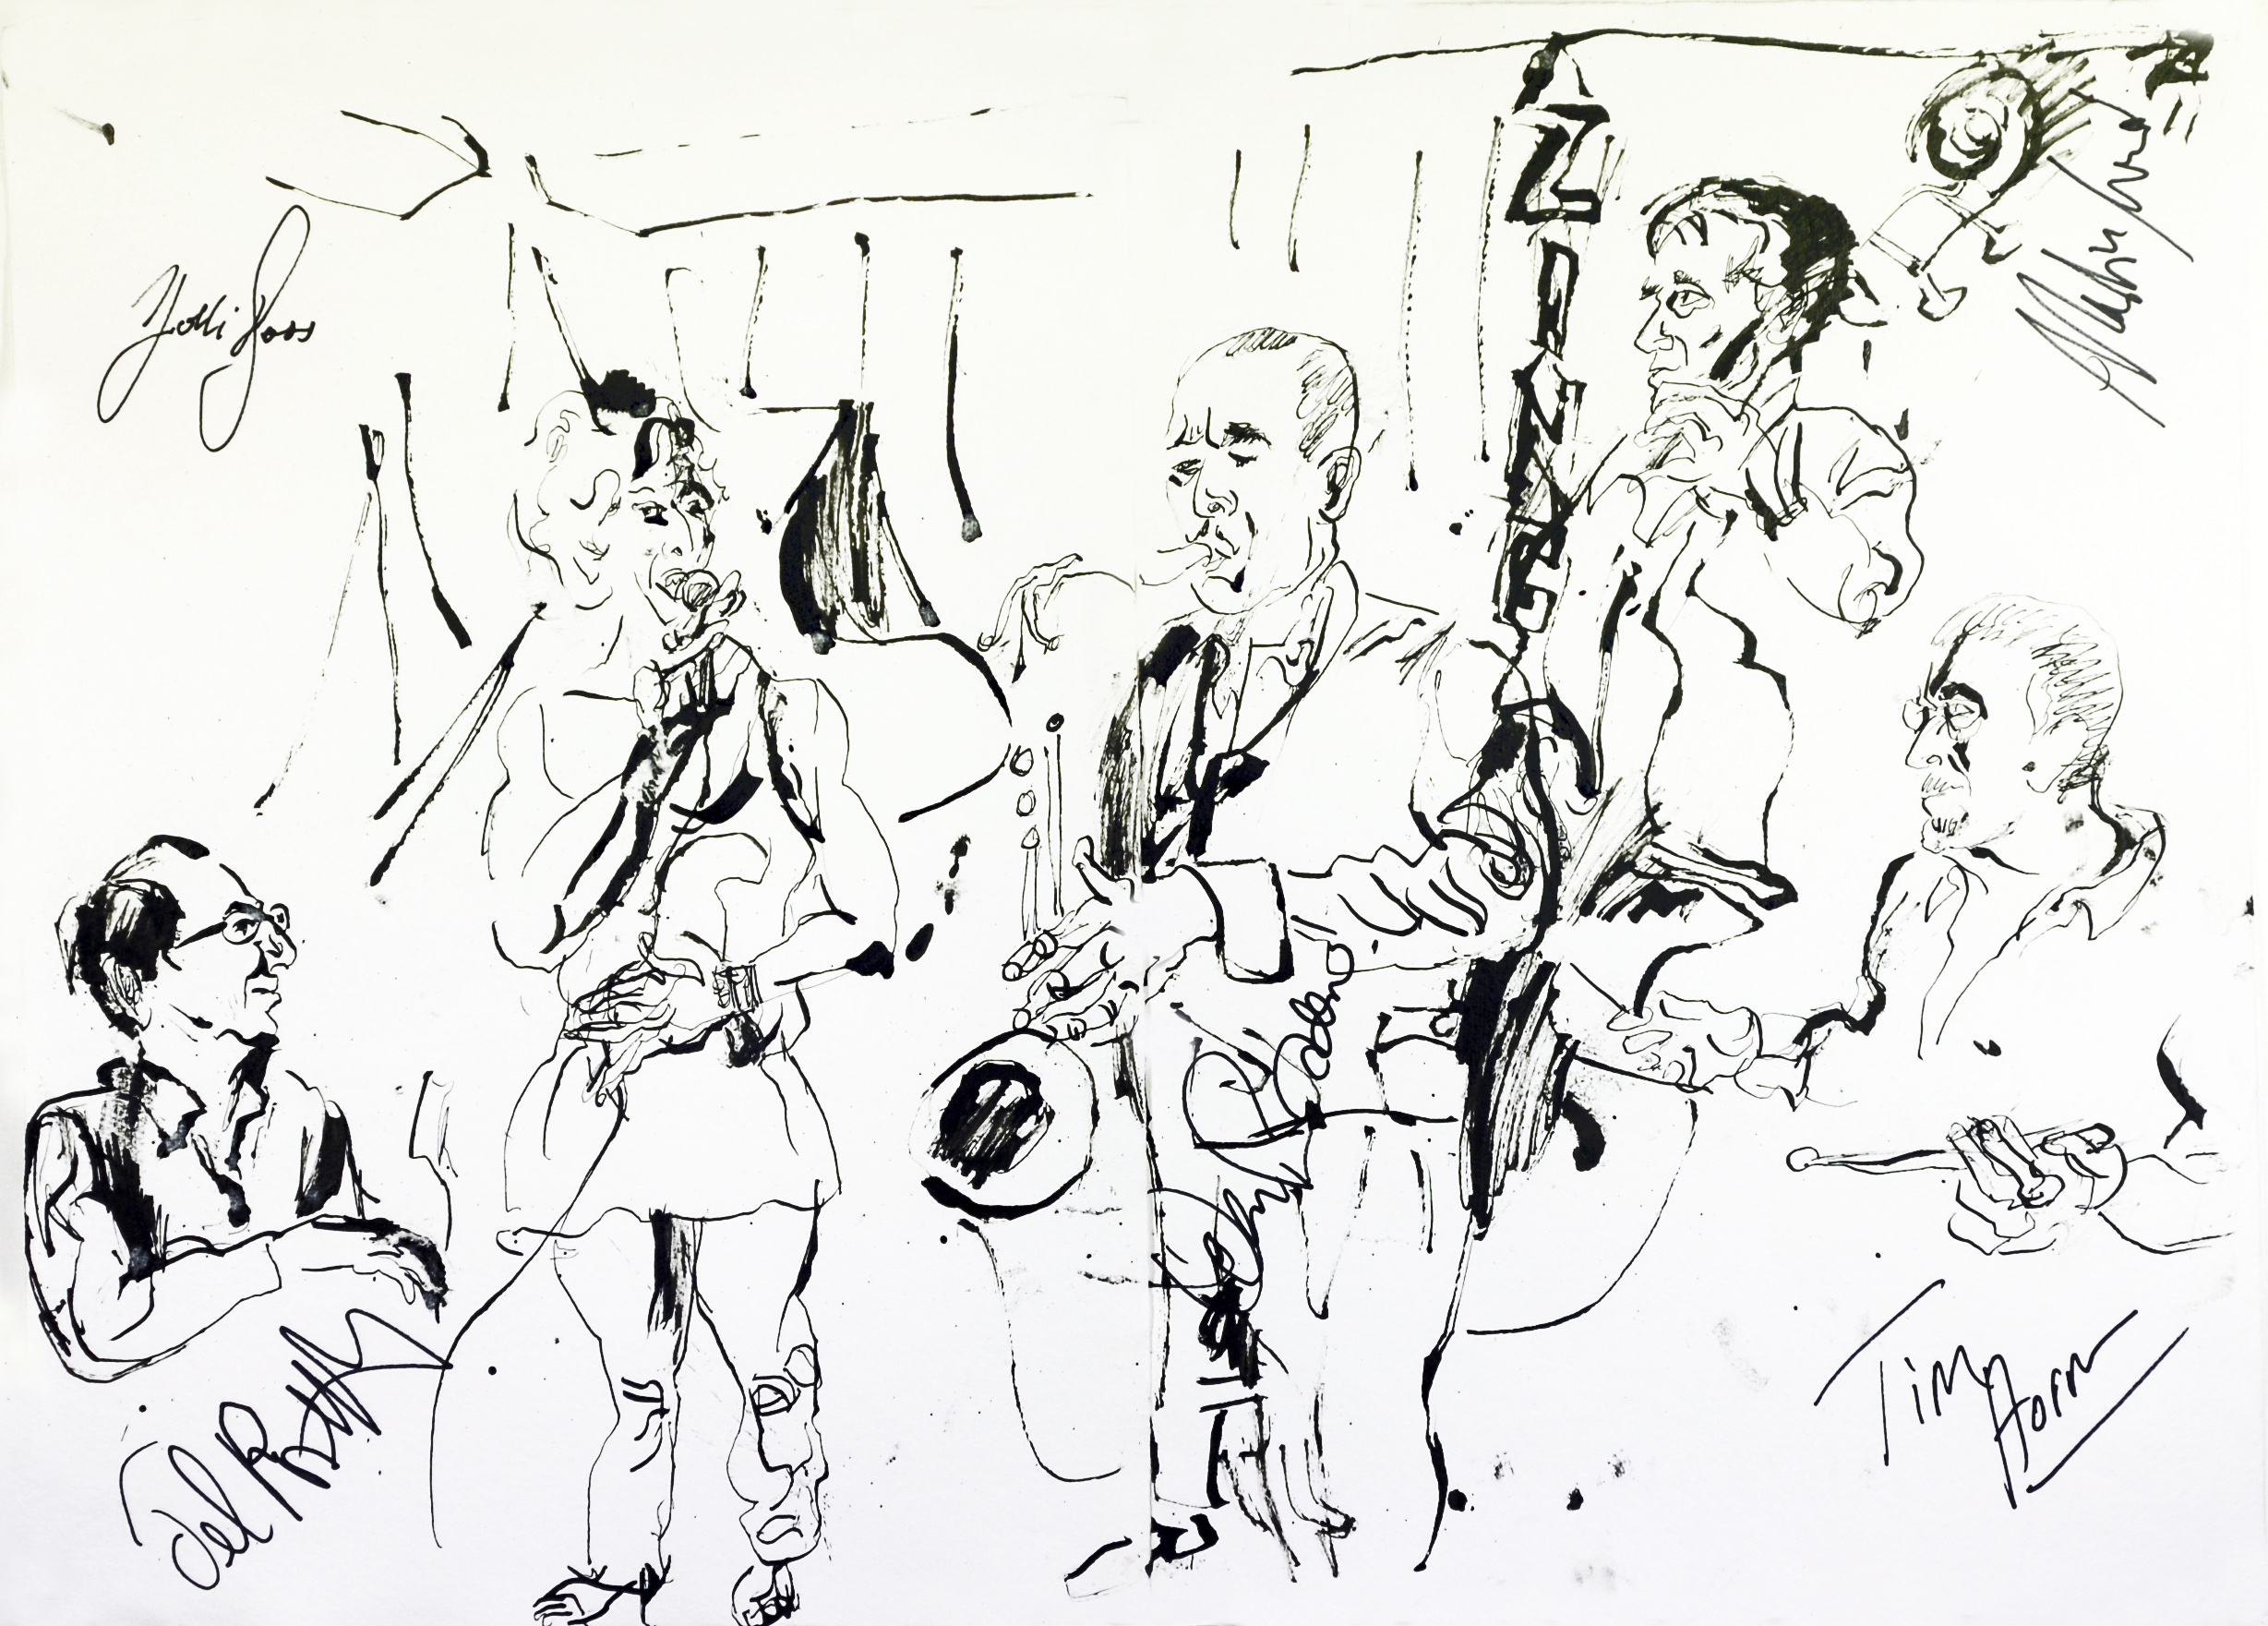 """Jonathan Glass  Holli Ross Quartet,2012,Pen and Ink on paper,16.5"""" x 23.25"""""""